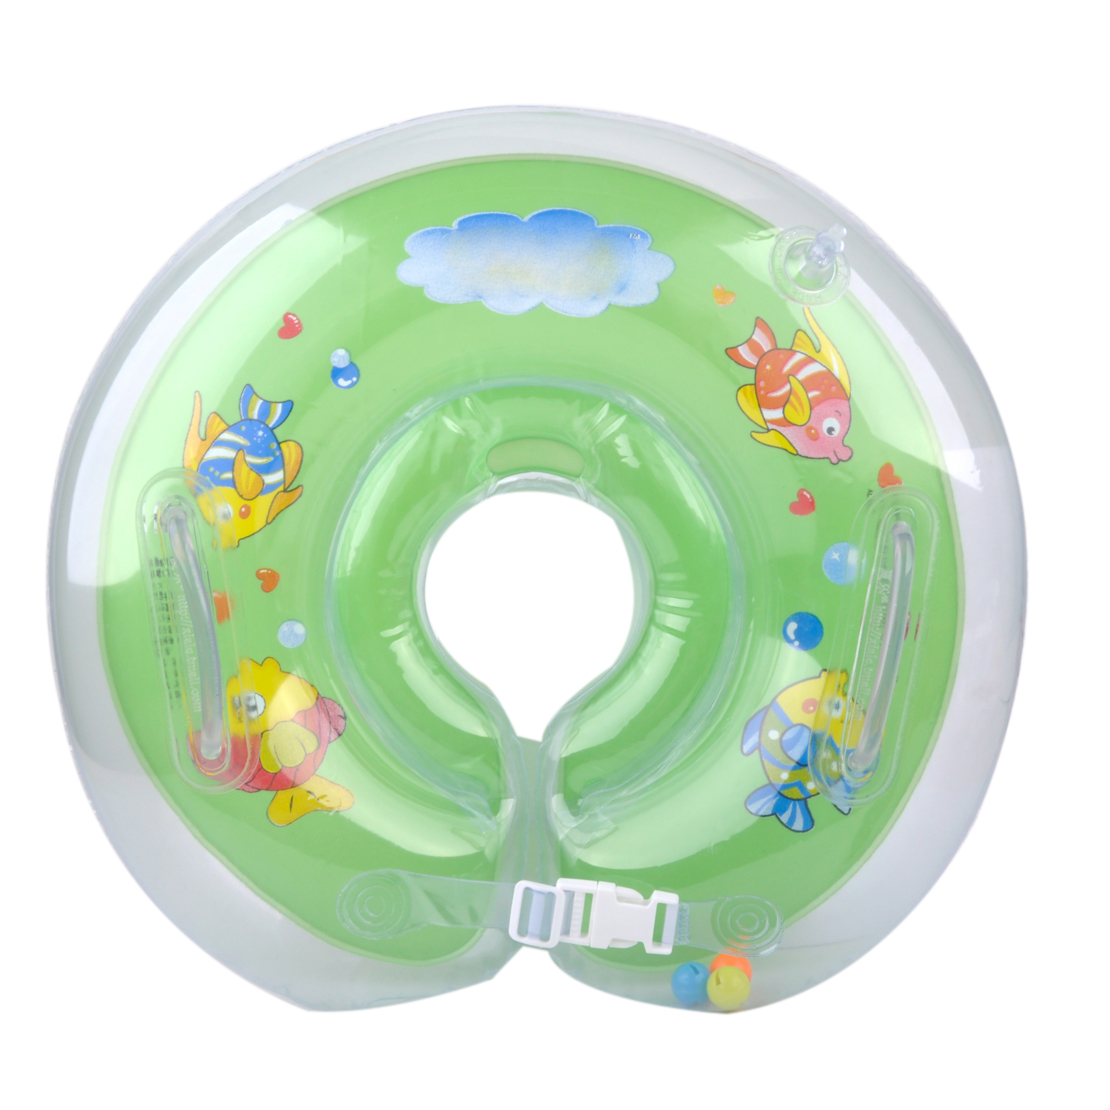 Inflatable-Infant-Baby-Swimming-Neck-Circle-Baby-Float-Ring-Bath-Tube-Safety